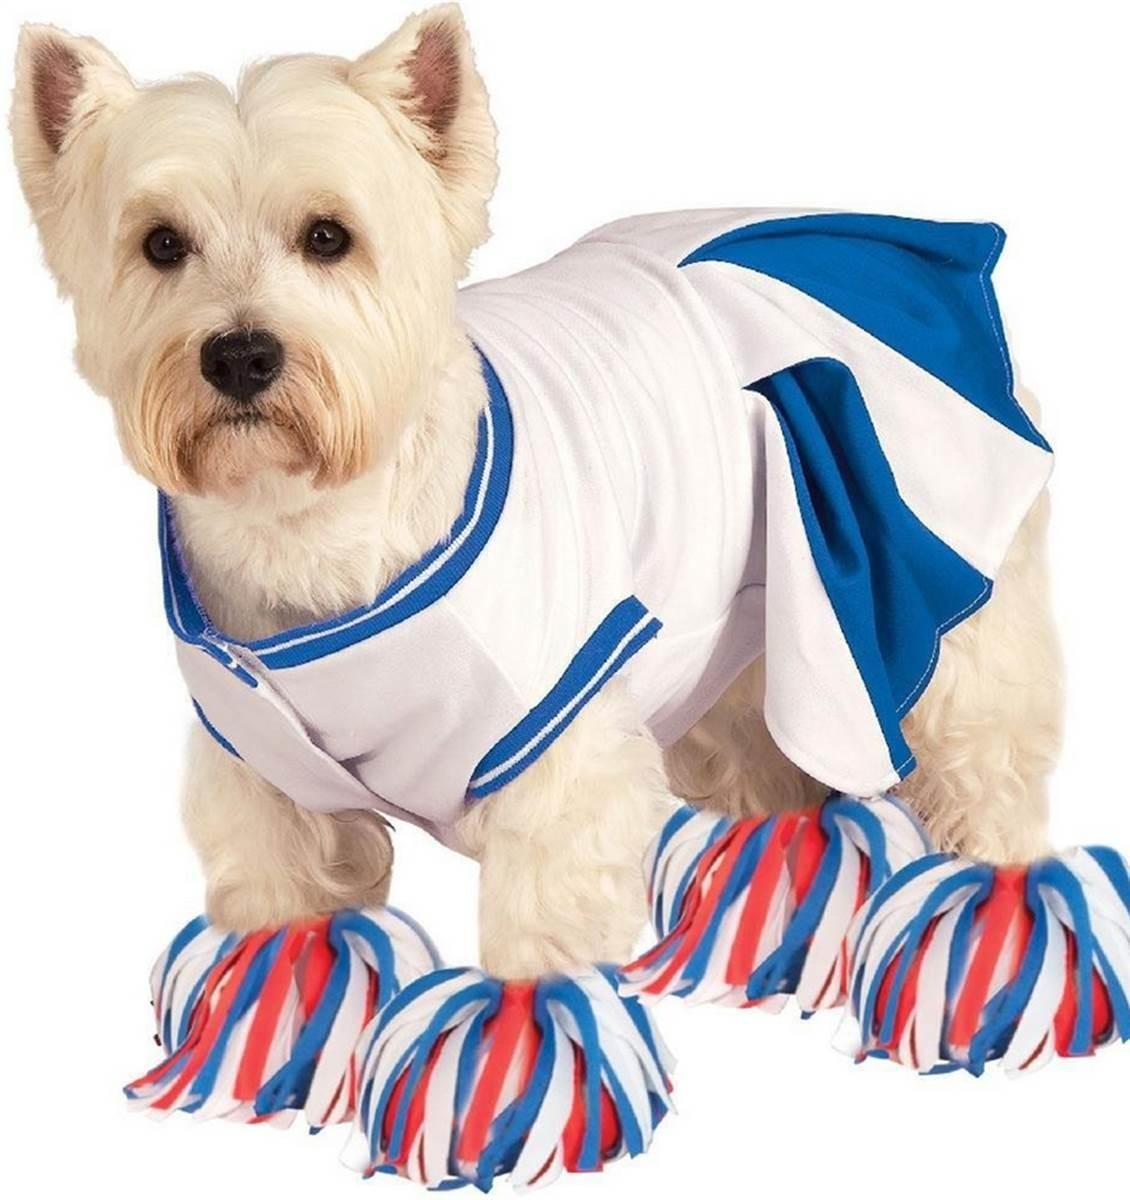 Halloween Dog Costume Ideas Easy Cute Costumes Your